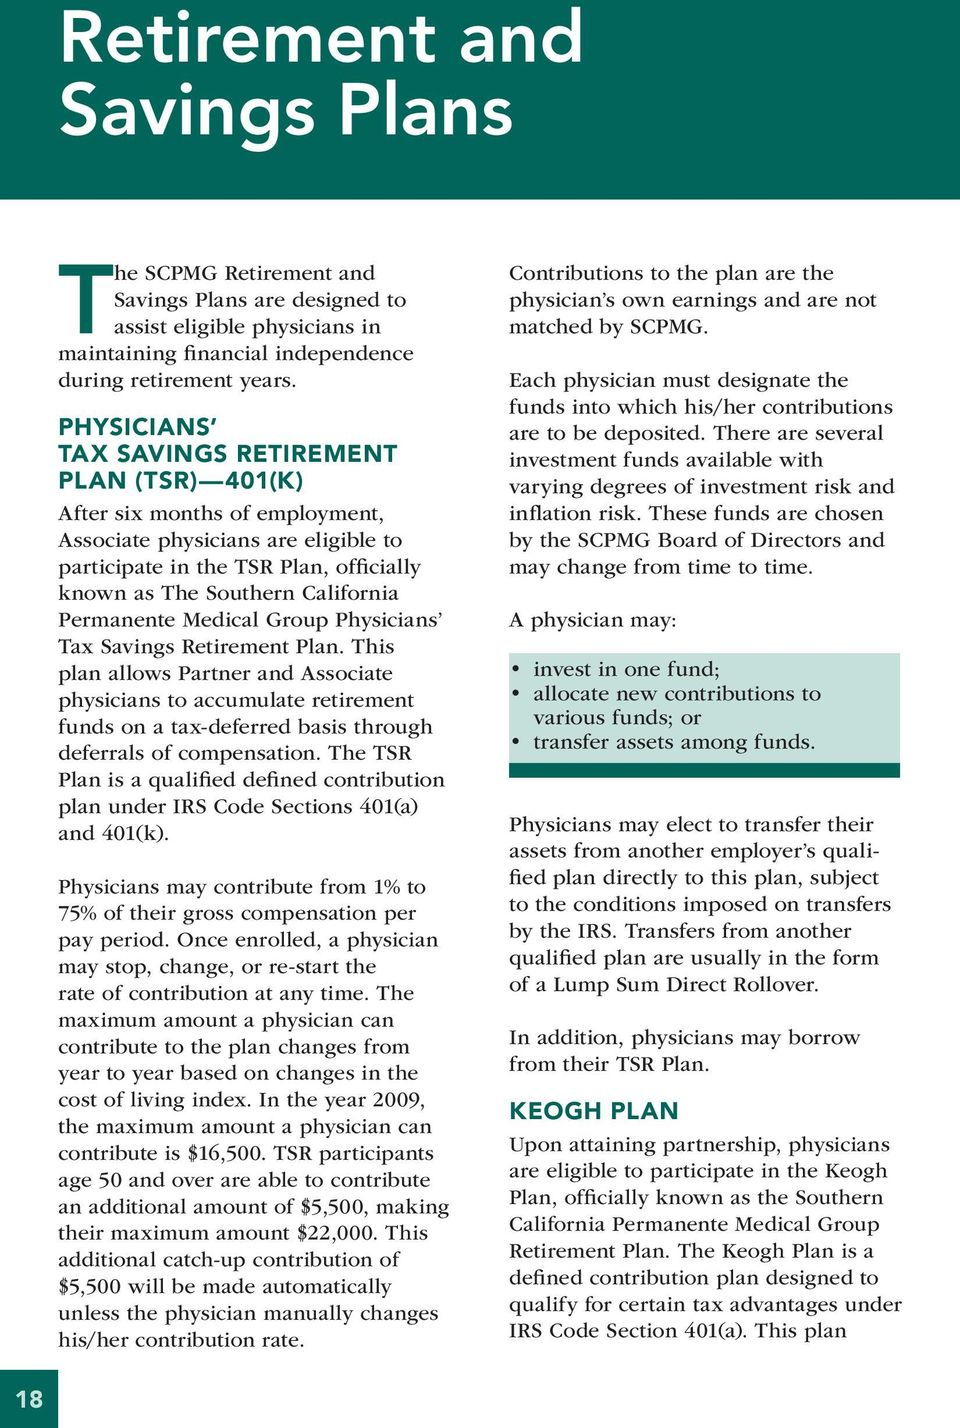 Permanente Medical Group Physicians Tax Savings Retirement Plan.